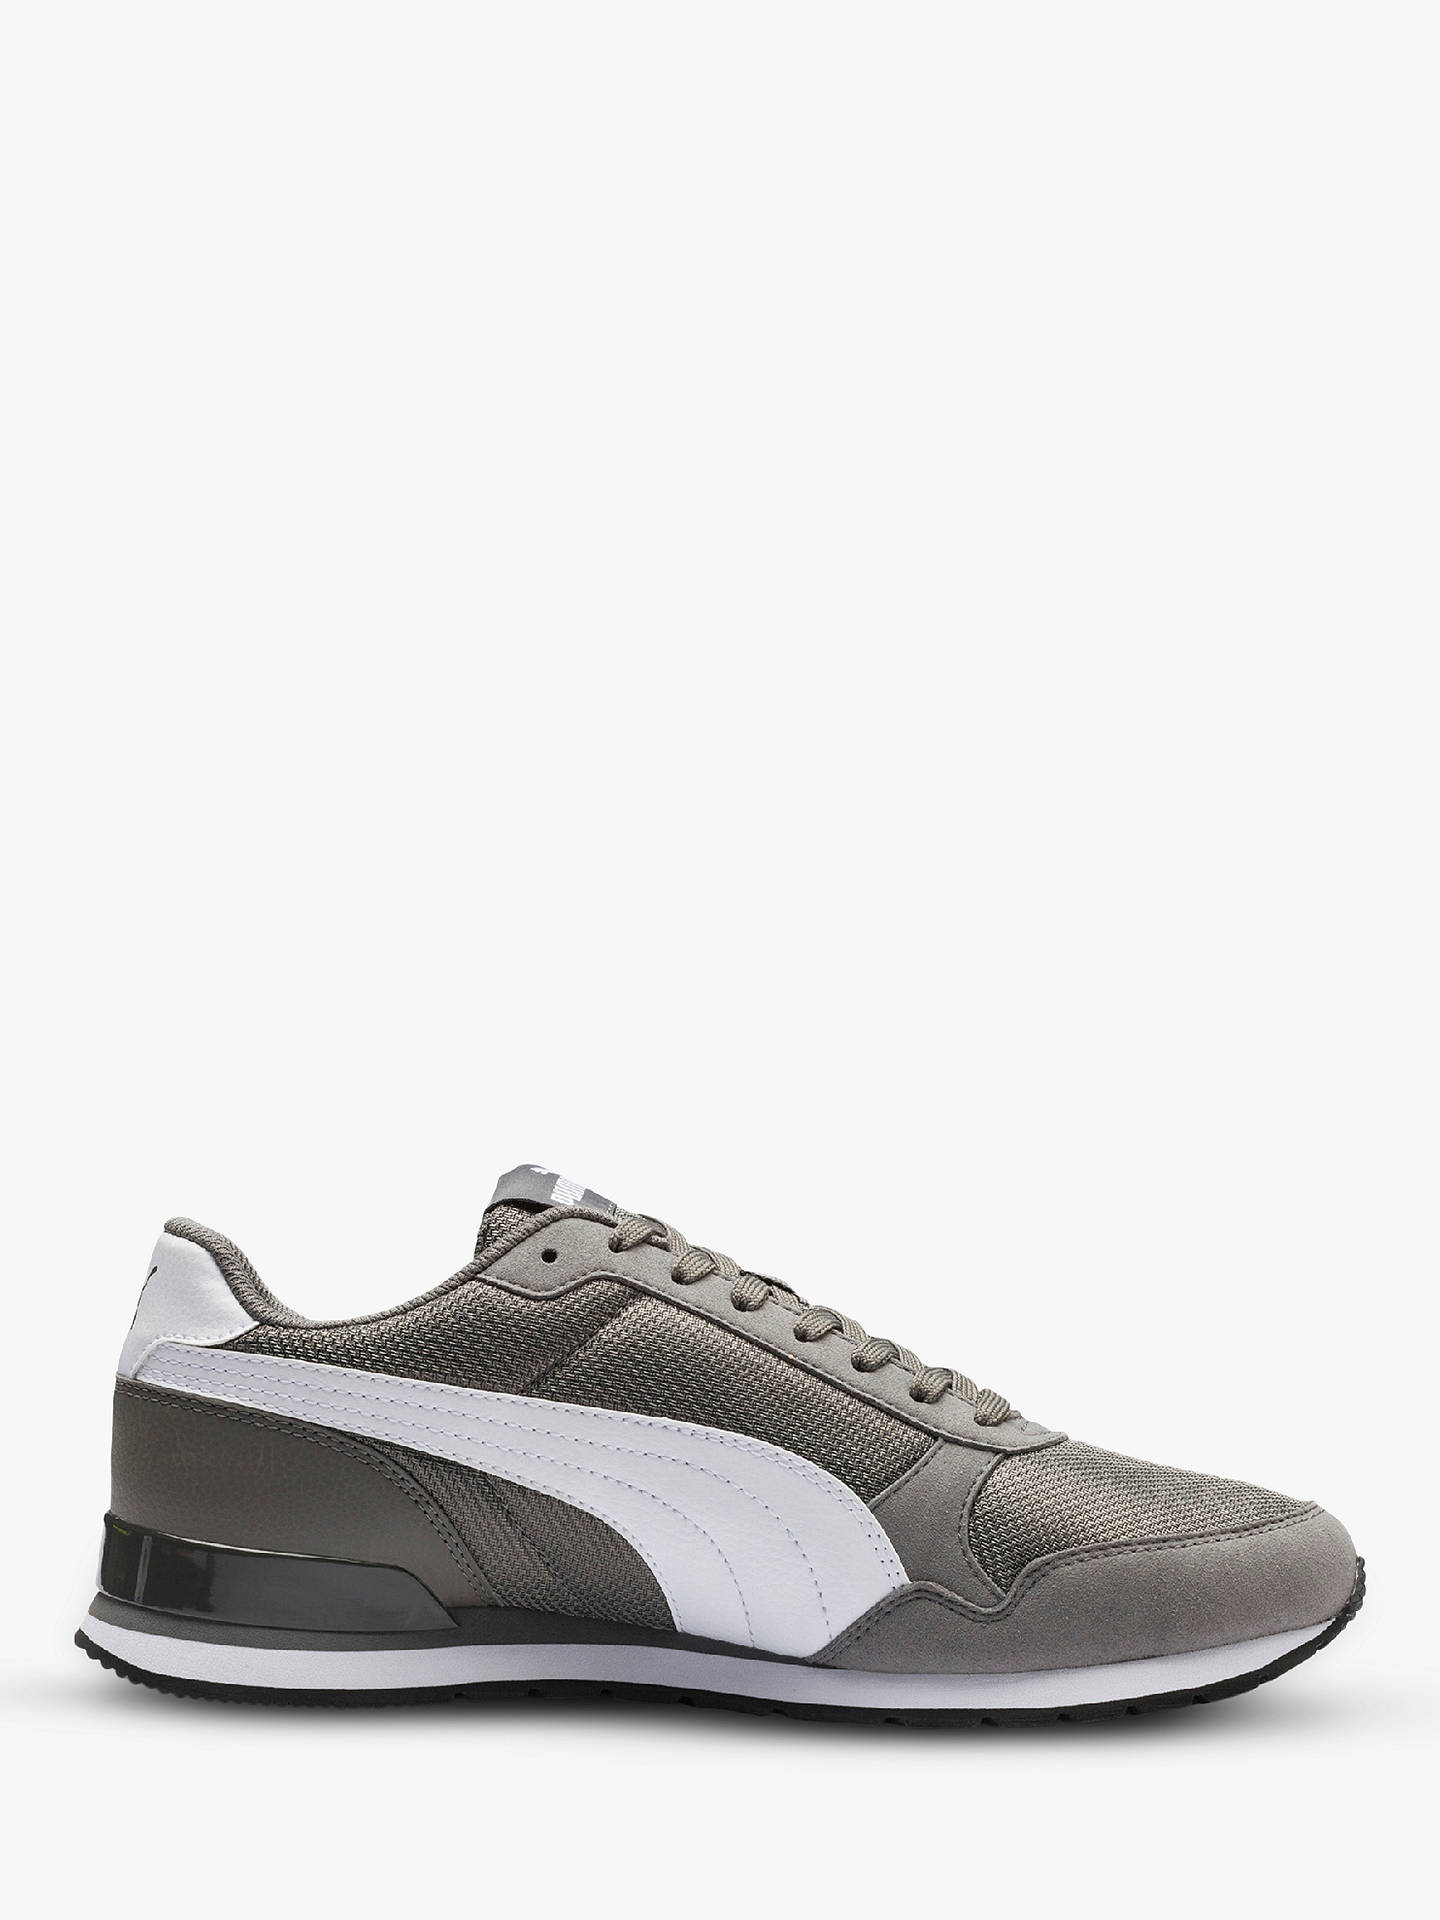 8ce61fef93a PUMA ST Runner Men's Trainers, Grey